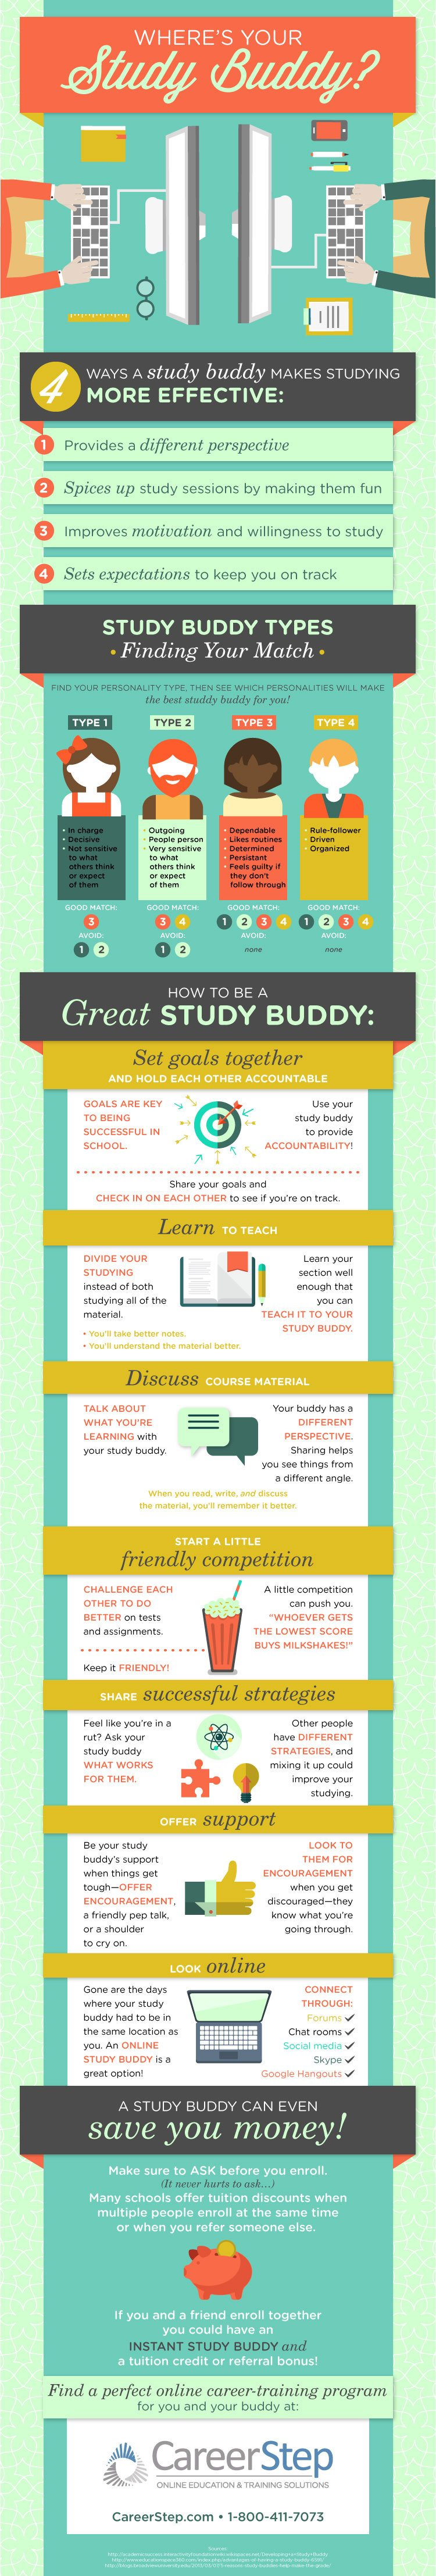 The Study Buddy Infographic